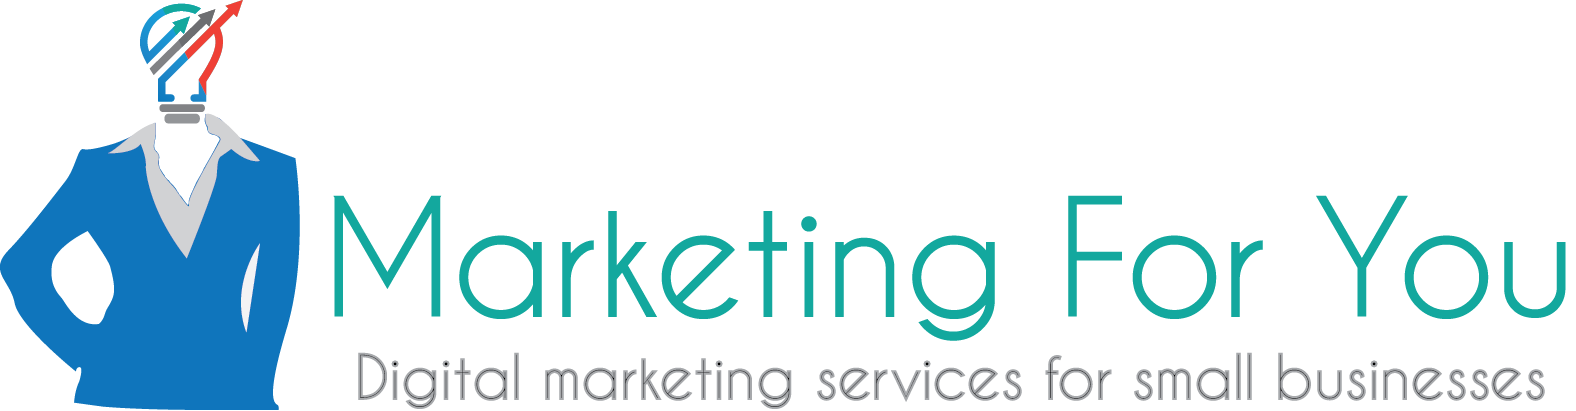 Marketing For You - Digital Marketing Services for small businesses Toronto and GTA